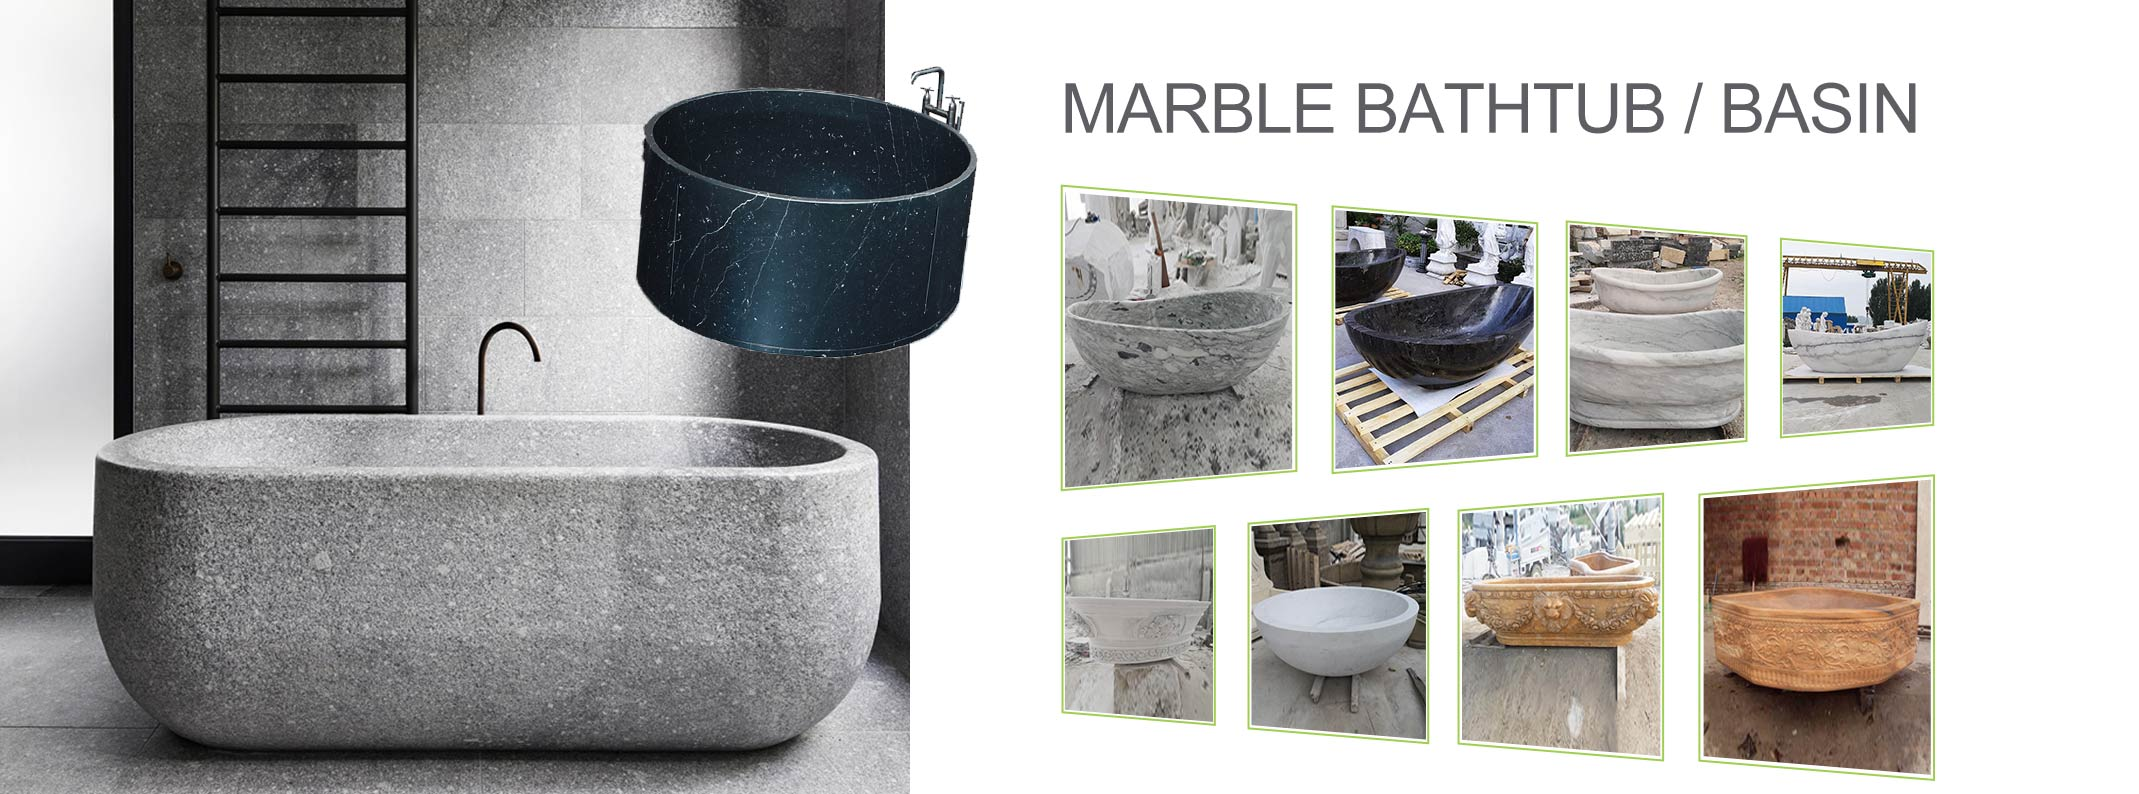 Marble Bathtub Basin